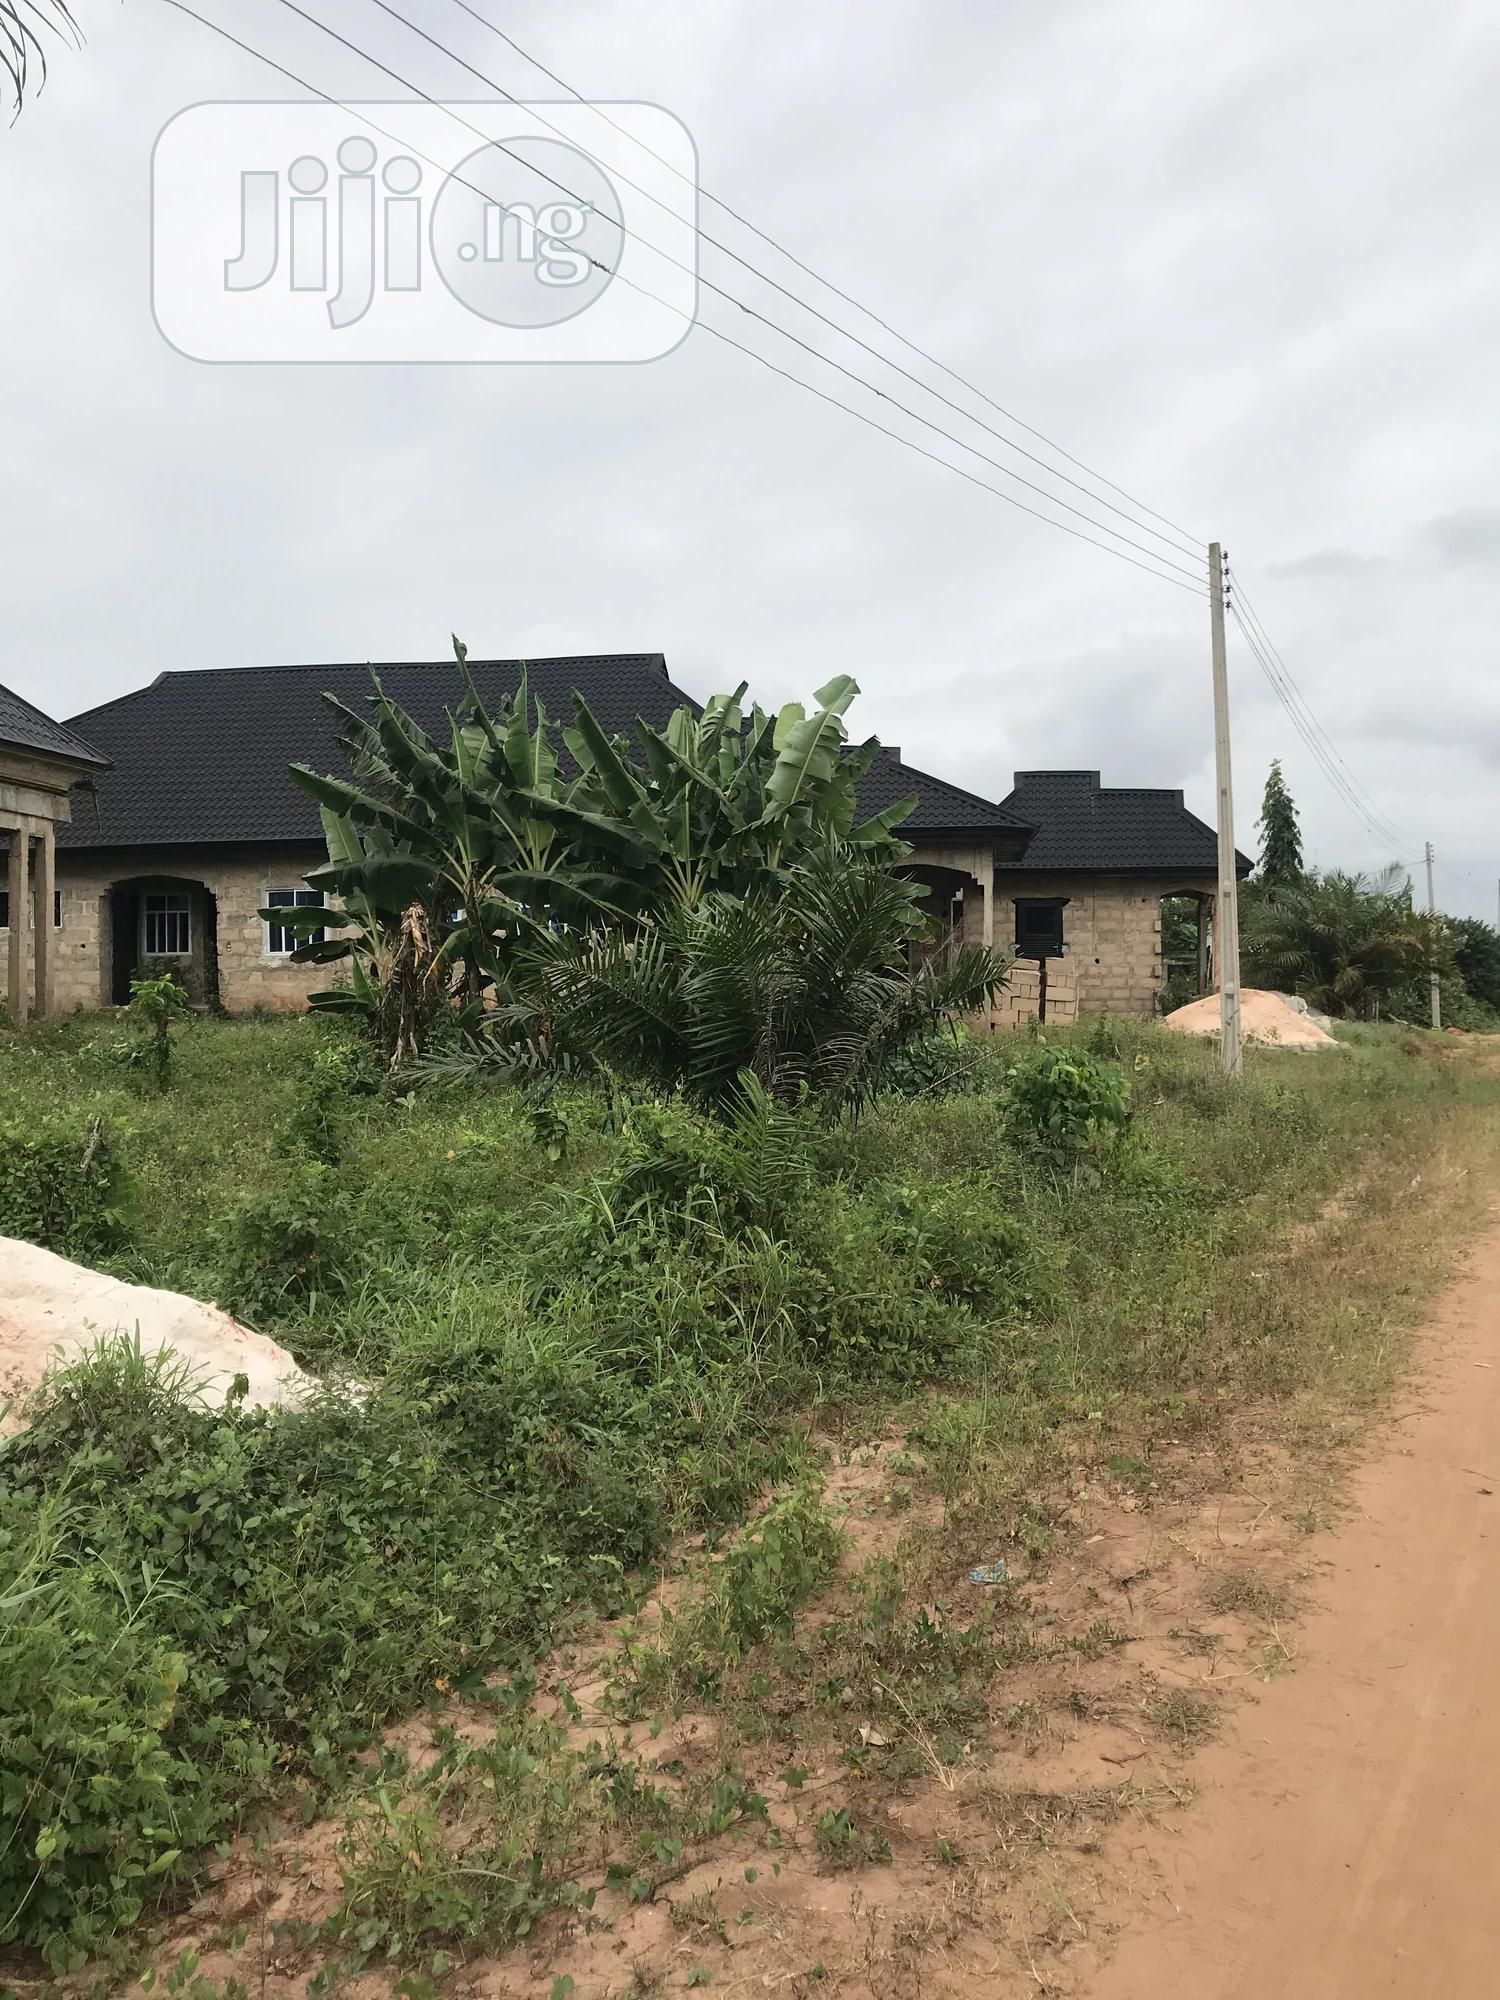 Genuine Plot Of Land Measuring 100x100ft For Urgent Sale | Land & Plots For Sale for sale in Benin City, Edo State, Nigeria